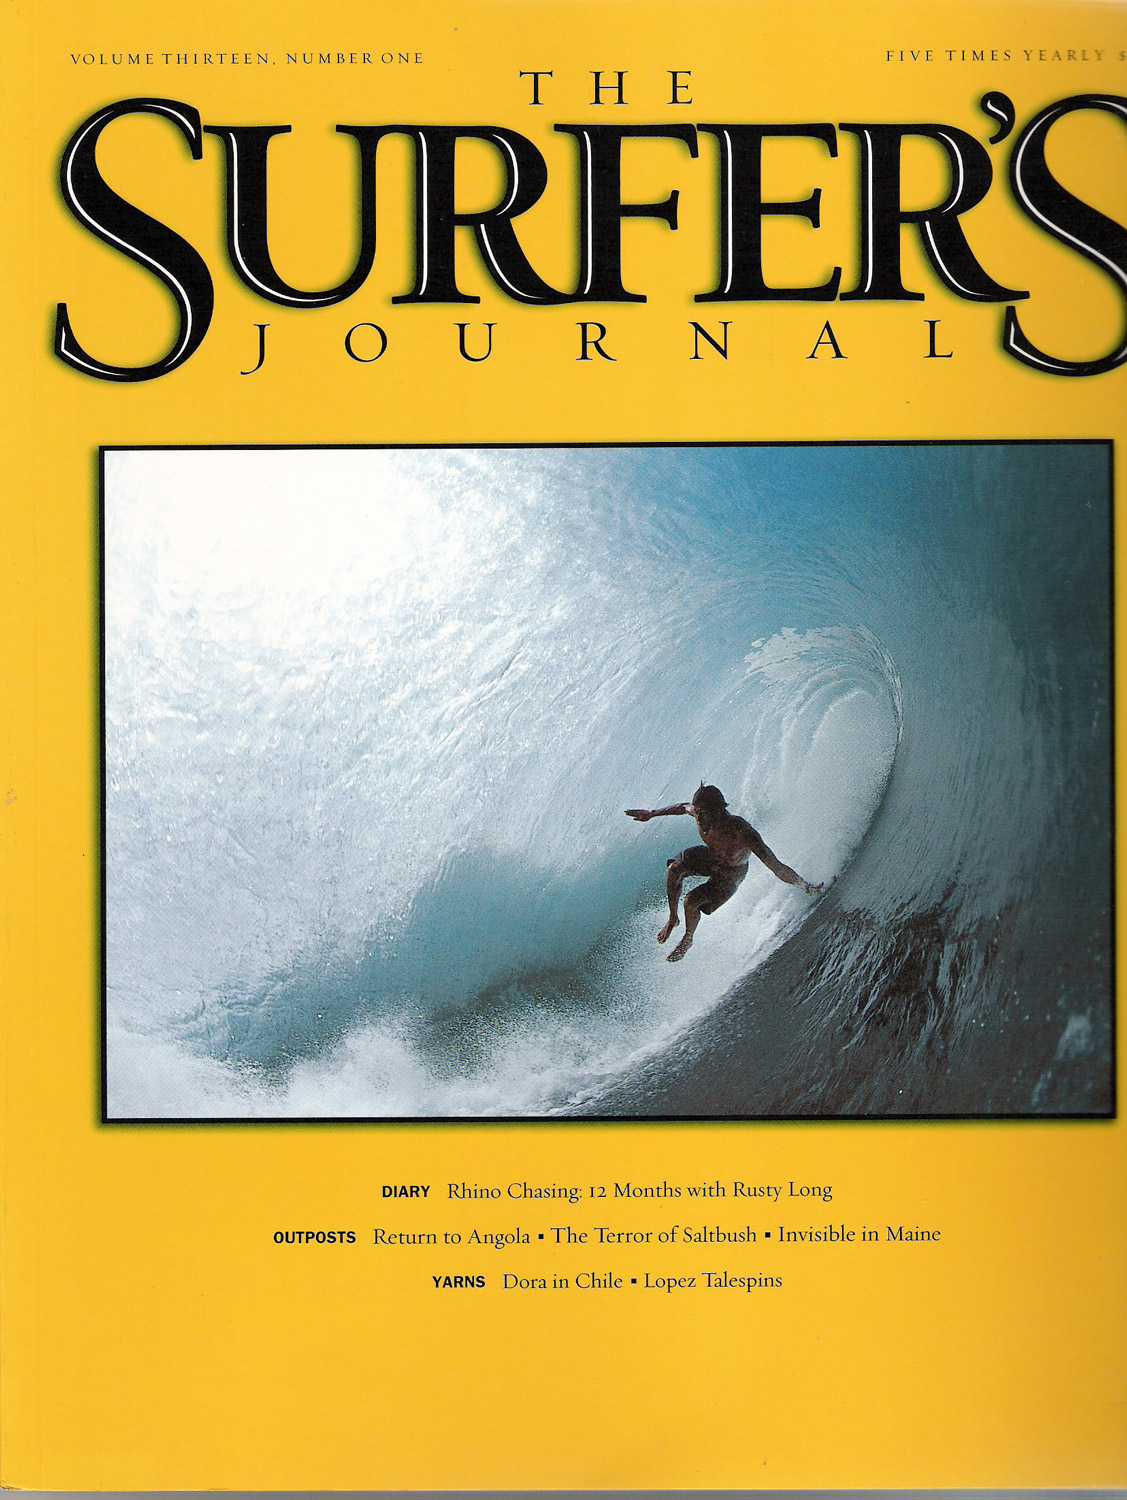 Cover-2-surfersjournal.jpg